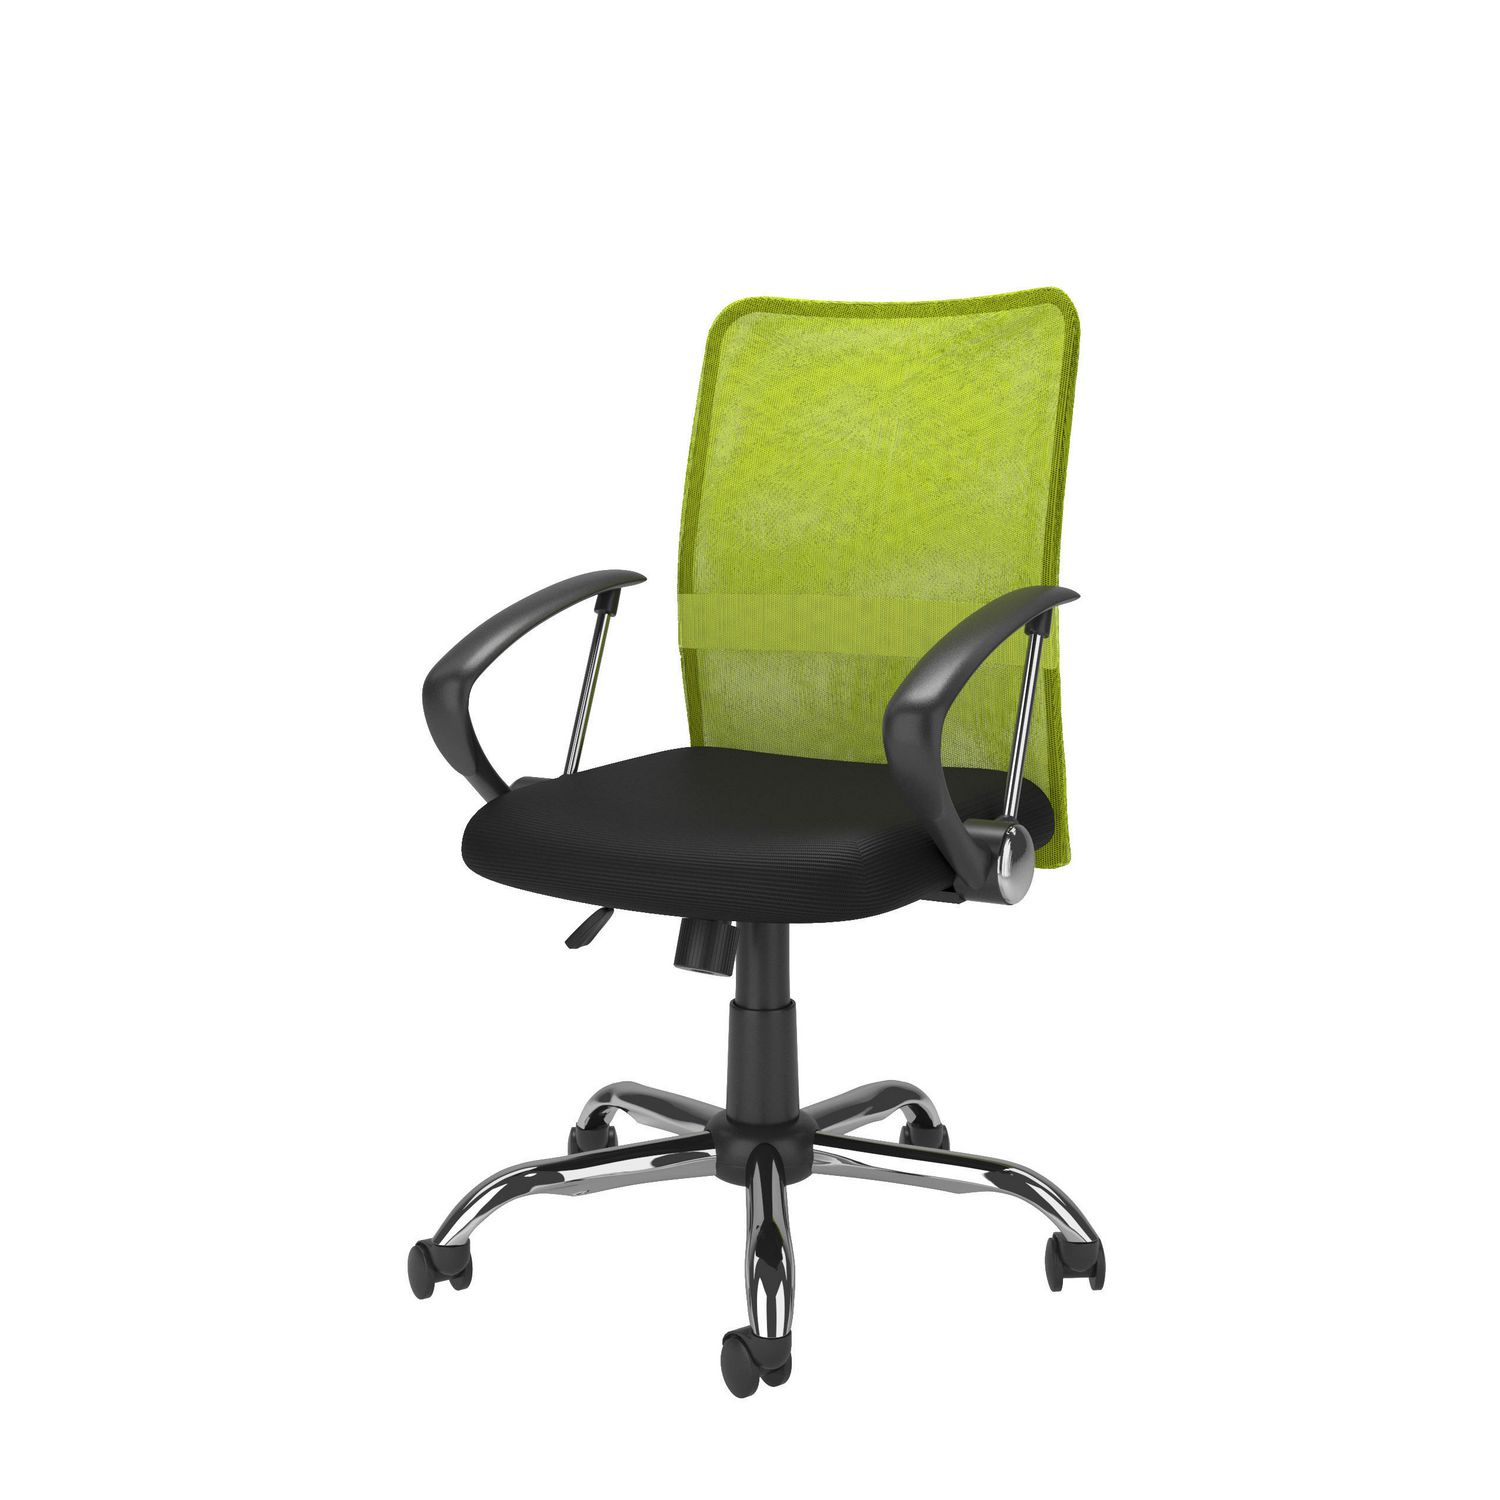 CorLiving Workspace Contoured Lime Green Mesh Back fice Chair